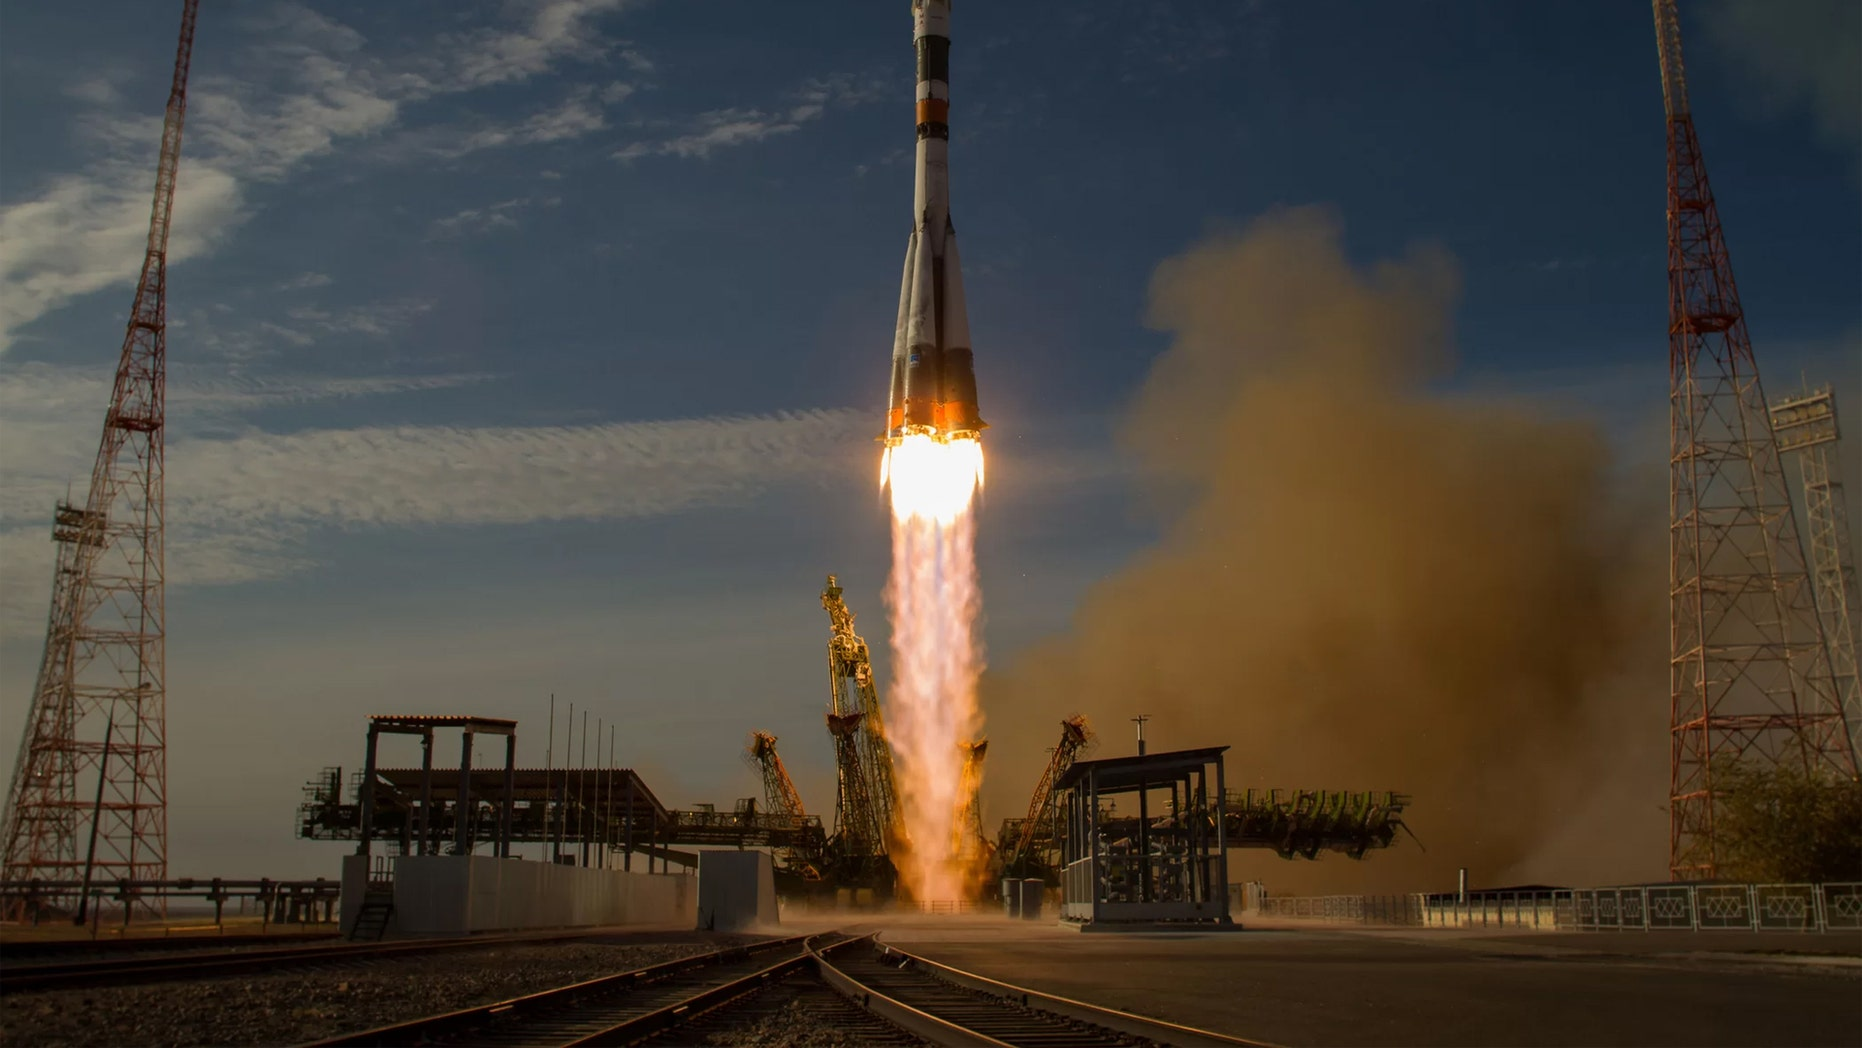 A Russian Soyuz spacecraft launches from the Baikonur Cosmodrome in Kazakhstan, carrying new crewmembers toward the International Space Station in 2012. Credit: Bill Ingalls/NASA